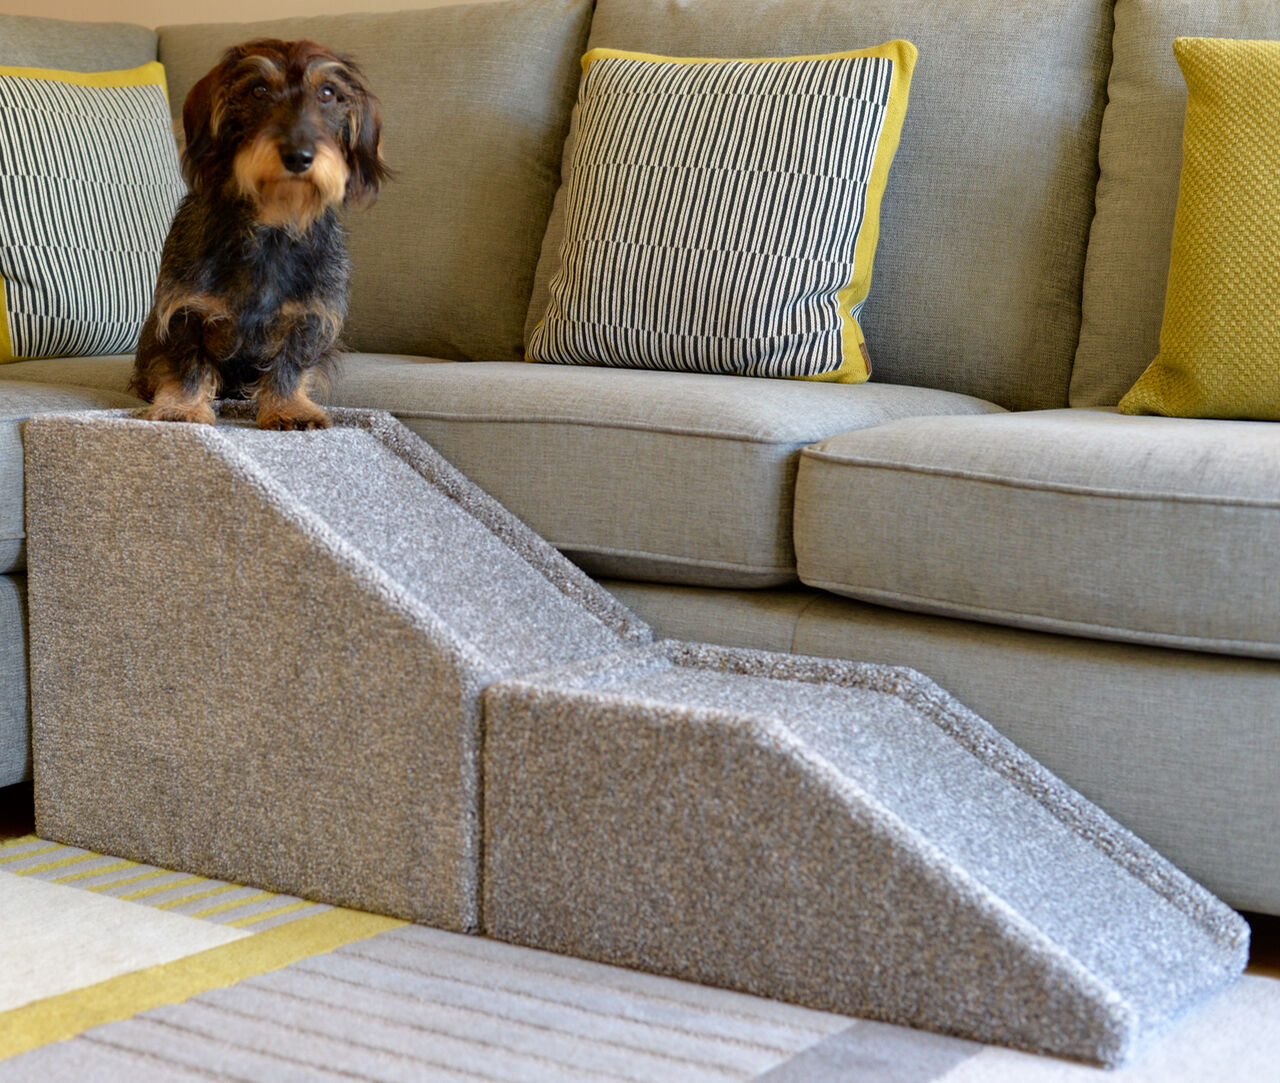 Dog Ramp For Bed >> DOG RAMP HANDMADE Indoor Pet Cat Dog Bed Sofa Steps Stairs Portable Lightweight - £70.00 ...